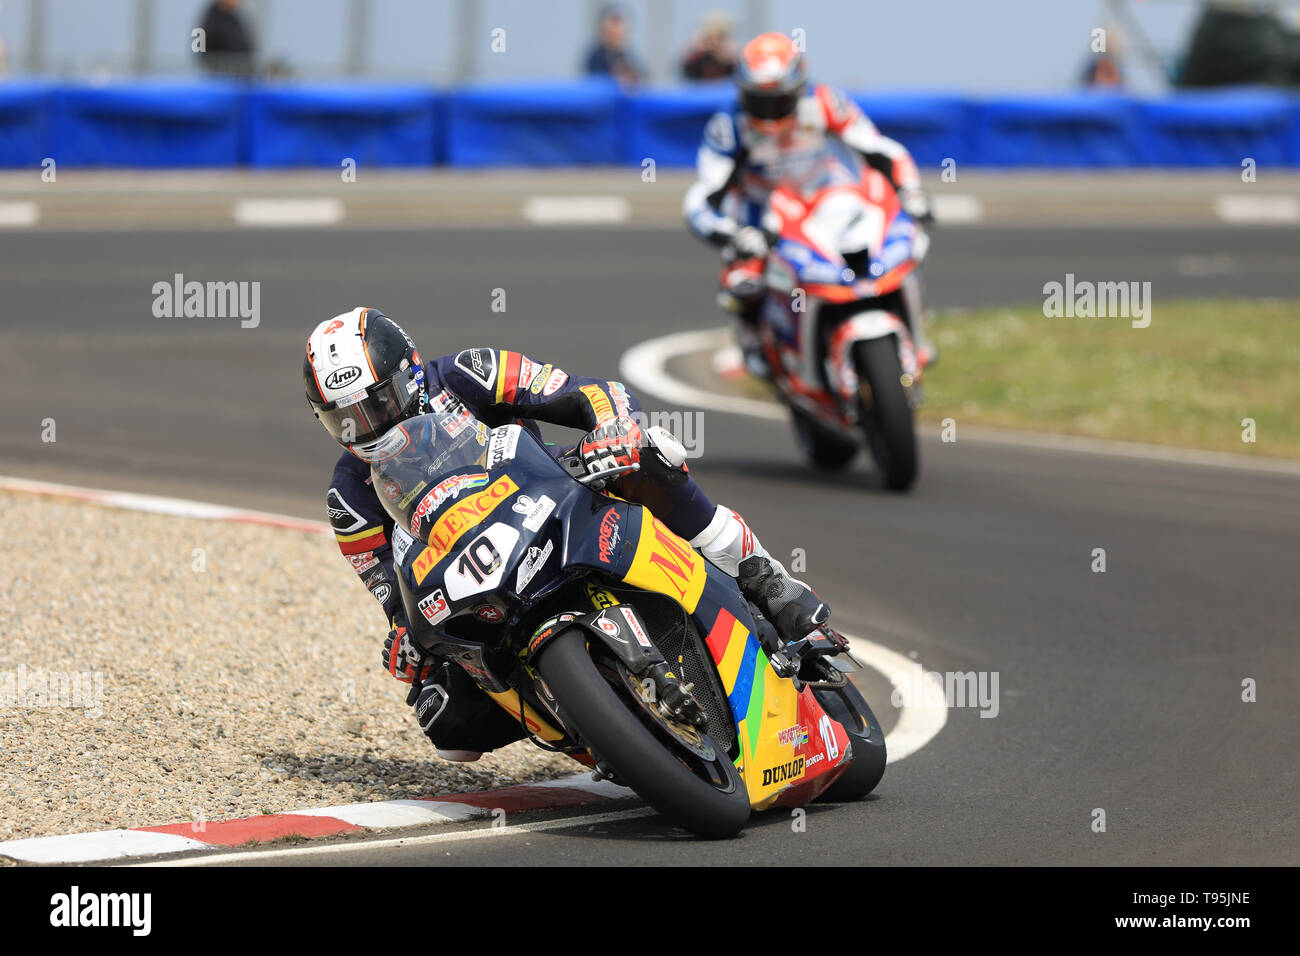 Portrush, Northern Ireland. 16th May, 2019. International North West 200 Motorcycle road racing, Thursday practice and evening racing; Coner Cummins on the MILENCO by Padgett's Motorcycles Honda during the SuperBike qualifying session Credit: Action Plus Sports/Alamy Live News - Stock Image